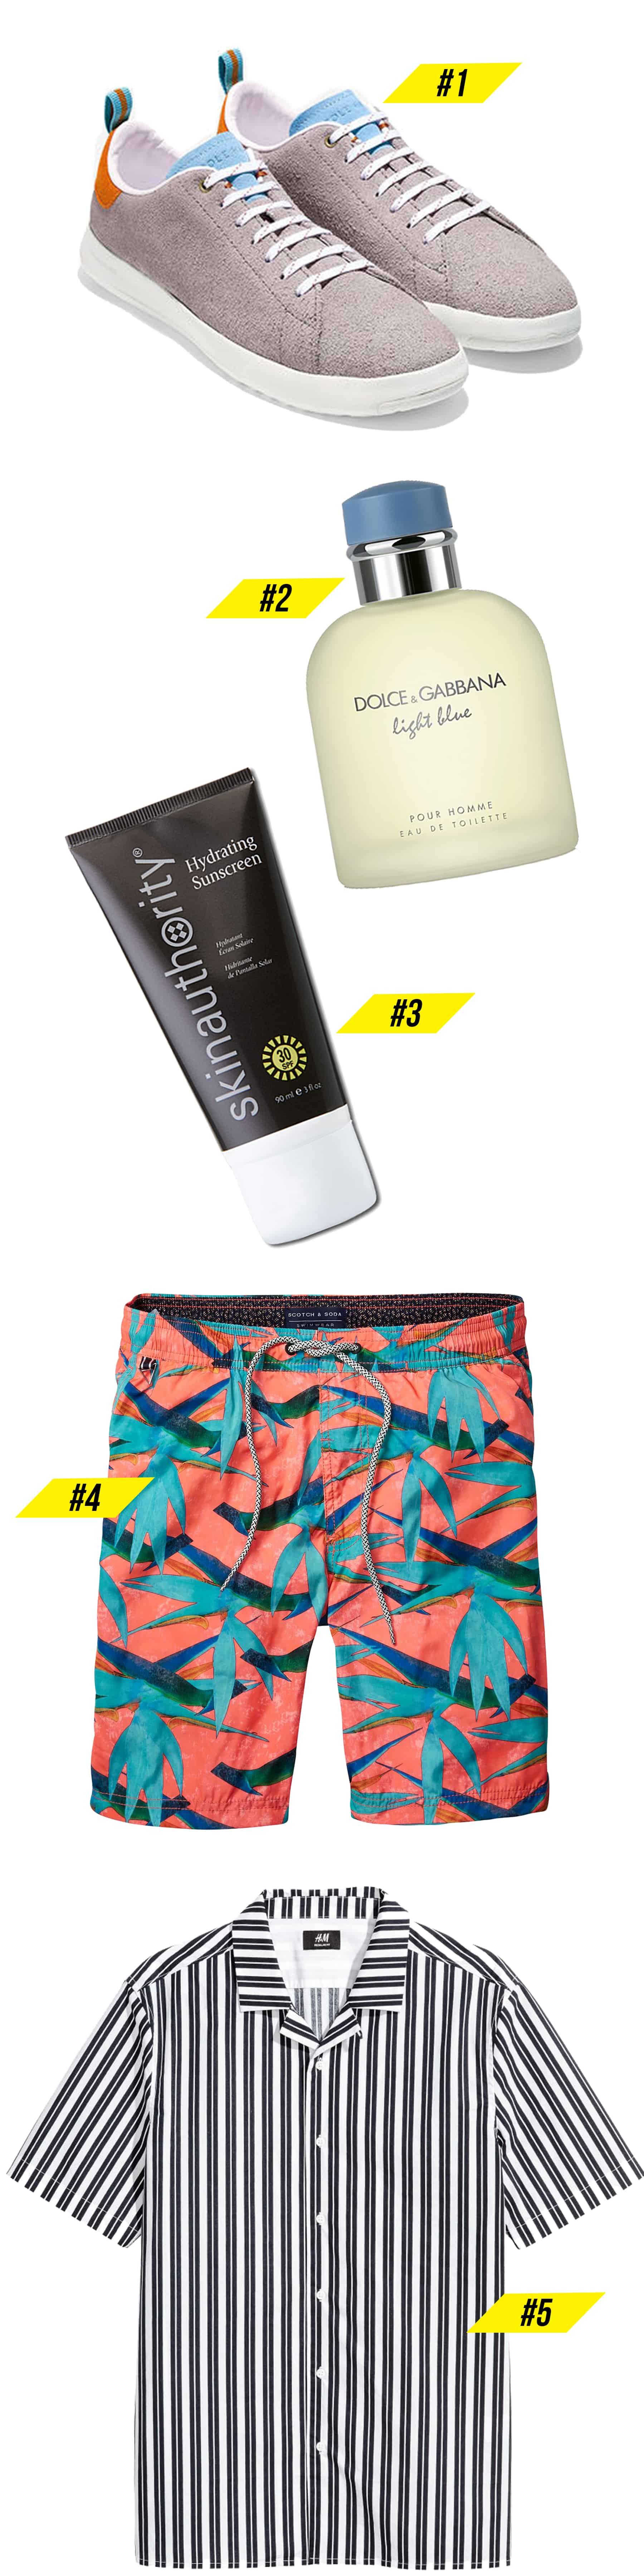 Editor's Picks for men round up featuring men's sneakers, colognes, sunscreen, multi color swim trunks, and stripe men's shirt